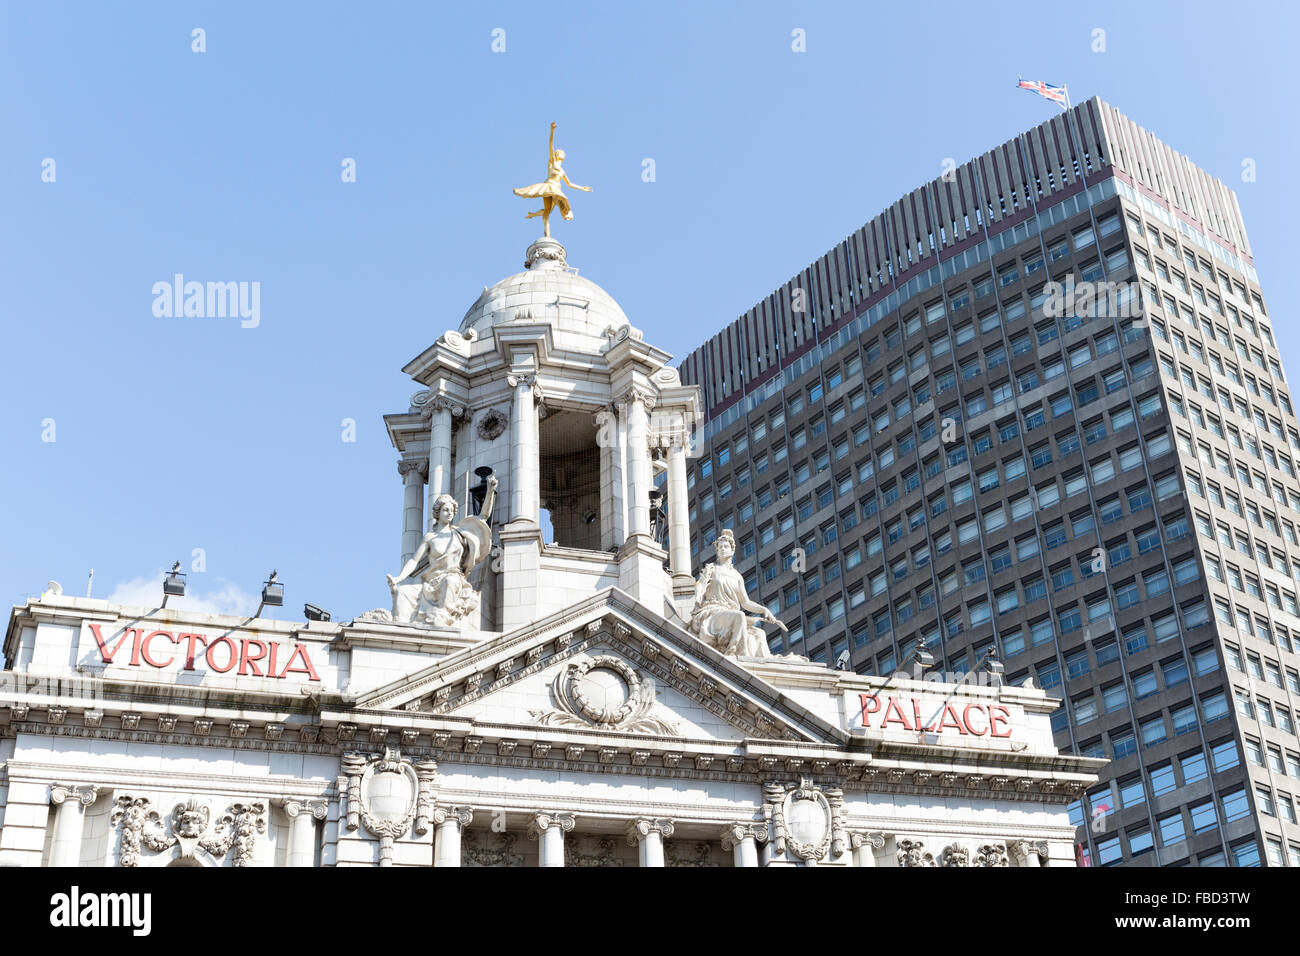 Victoria Palace Theatre, London, United Kingdom - Stock Image